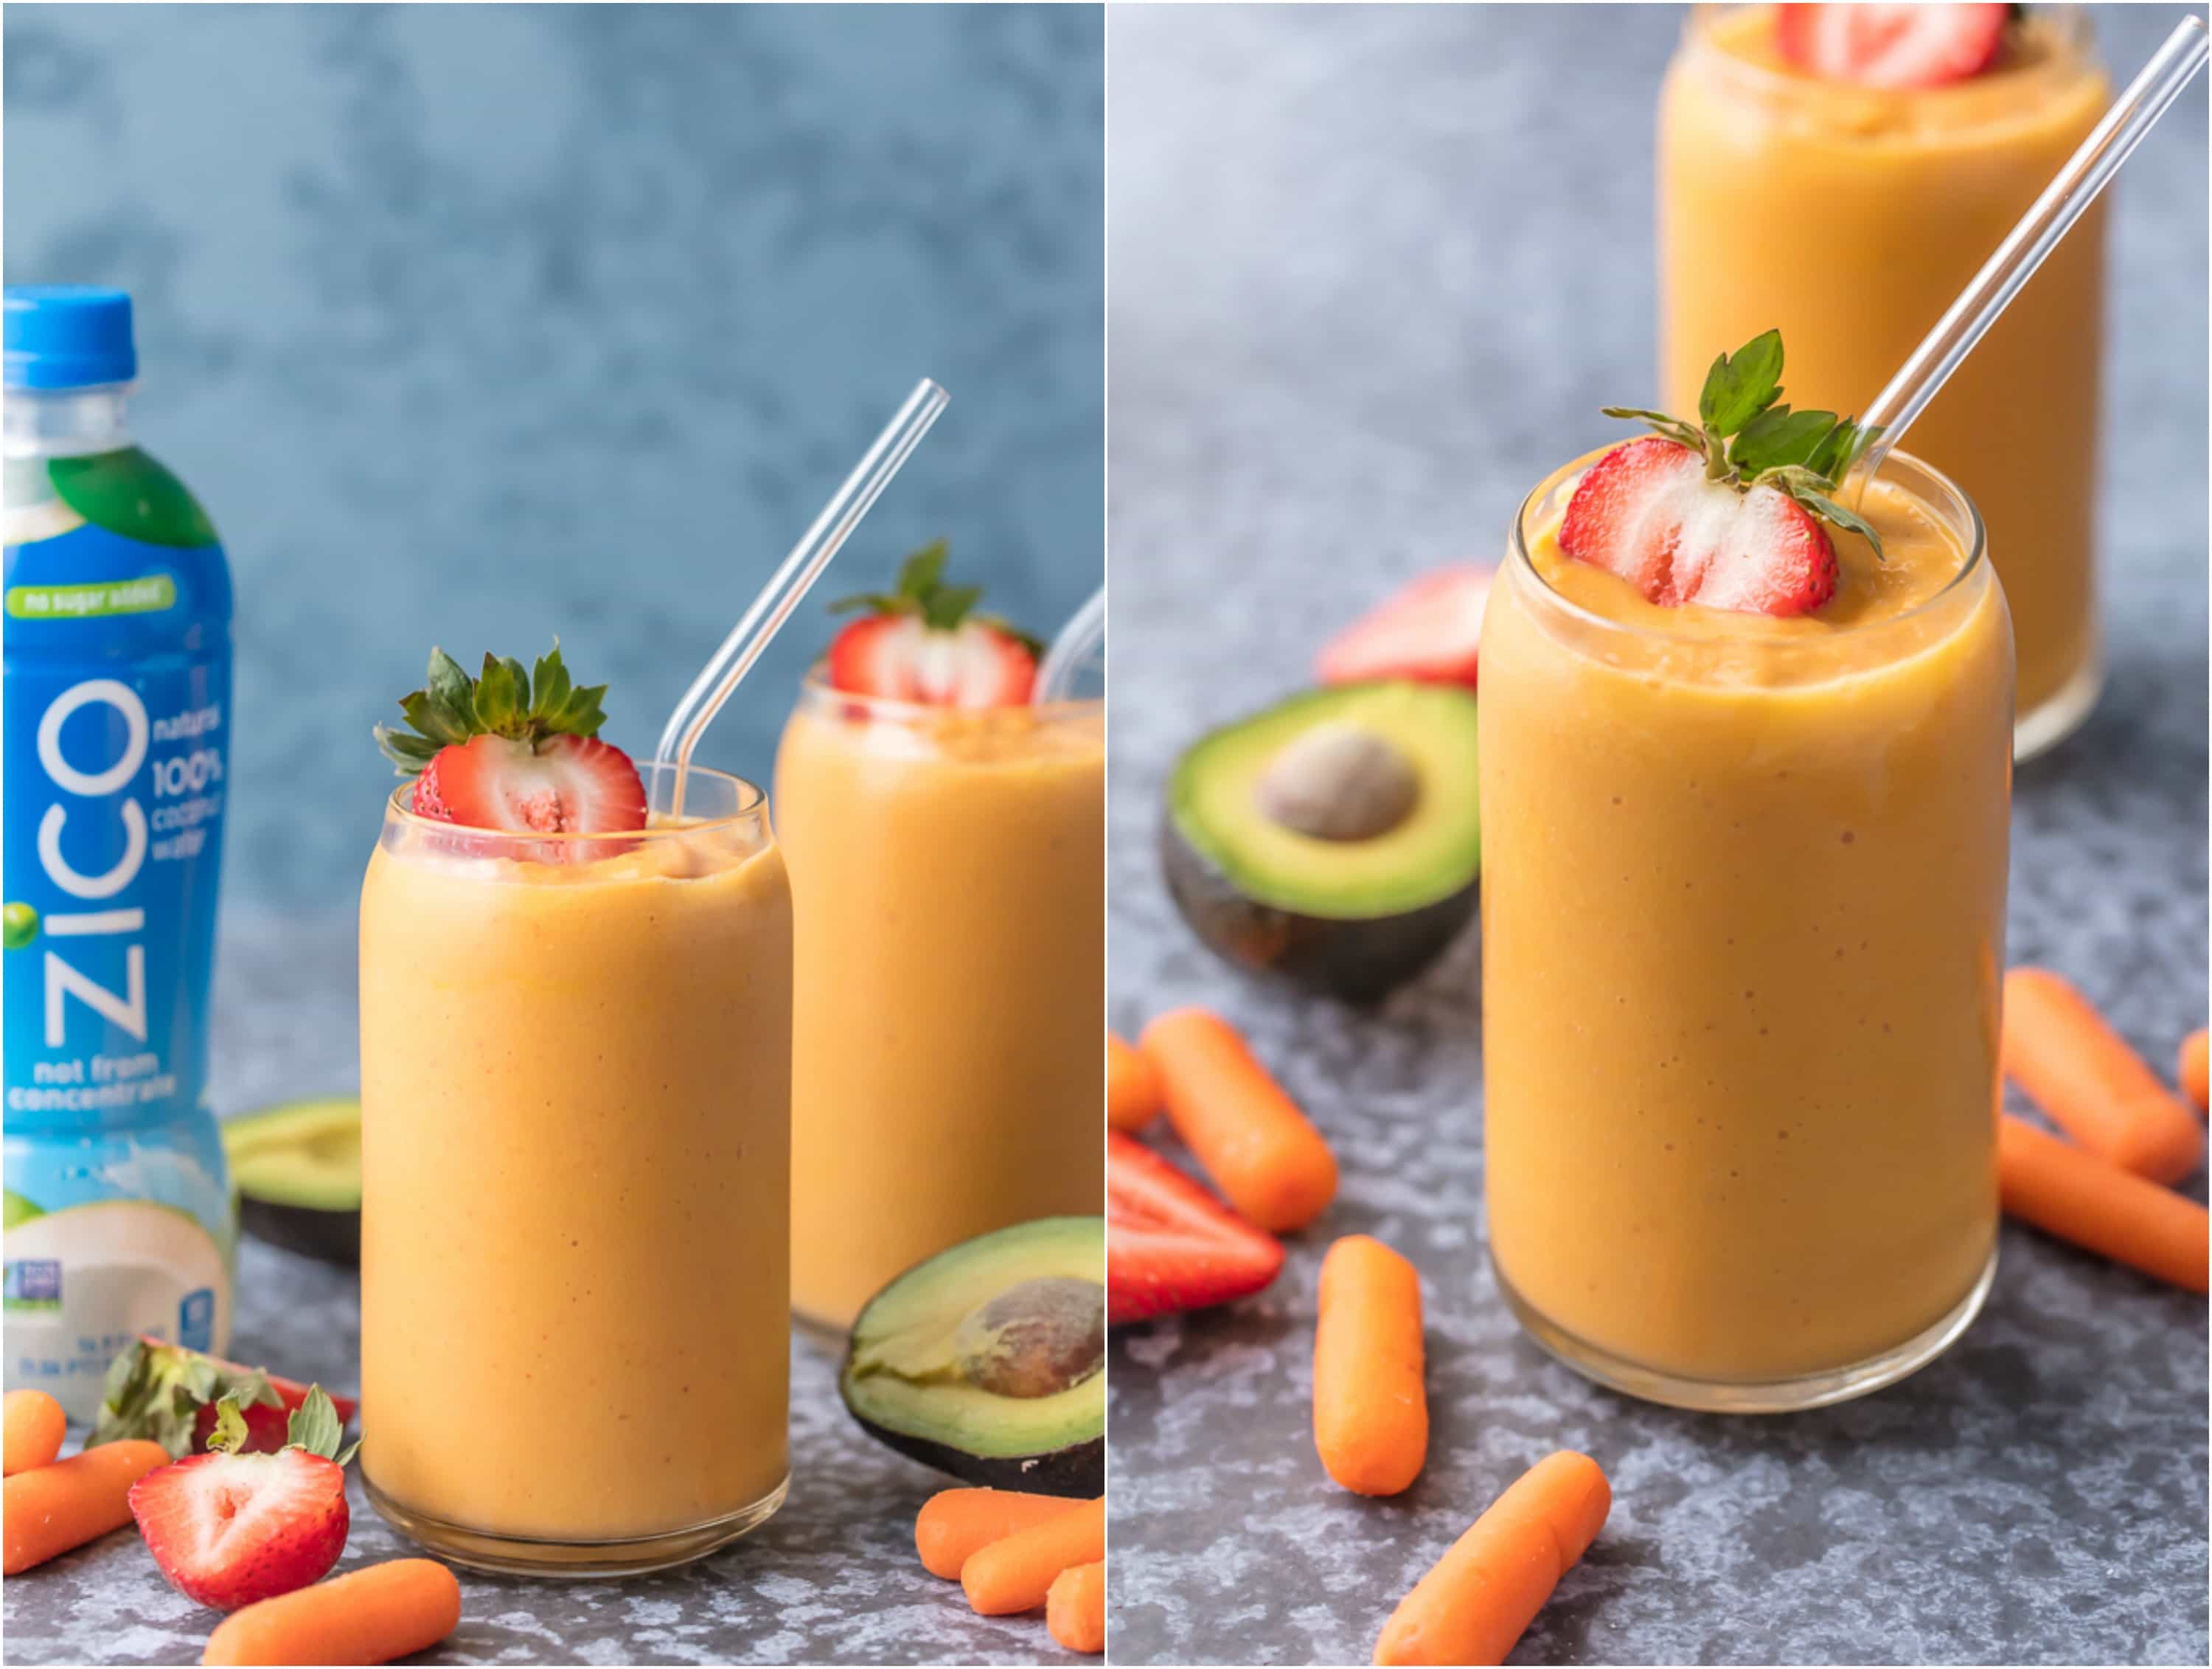 This GLOWING SKIN SMOOTHIE is full of delicious ingredients like coconut water, strawberries, mangoes, carrots, and avocado! Sip your way to beautiful skin with this easy treat.